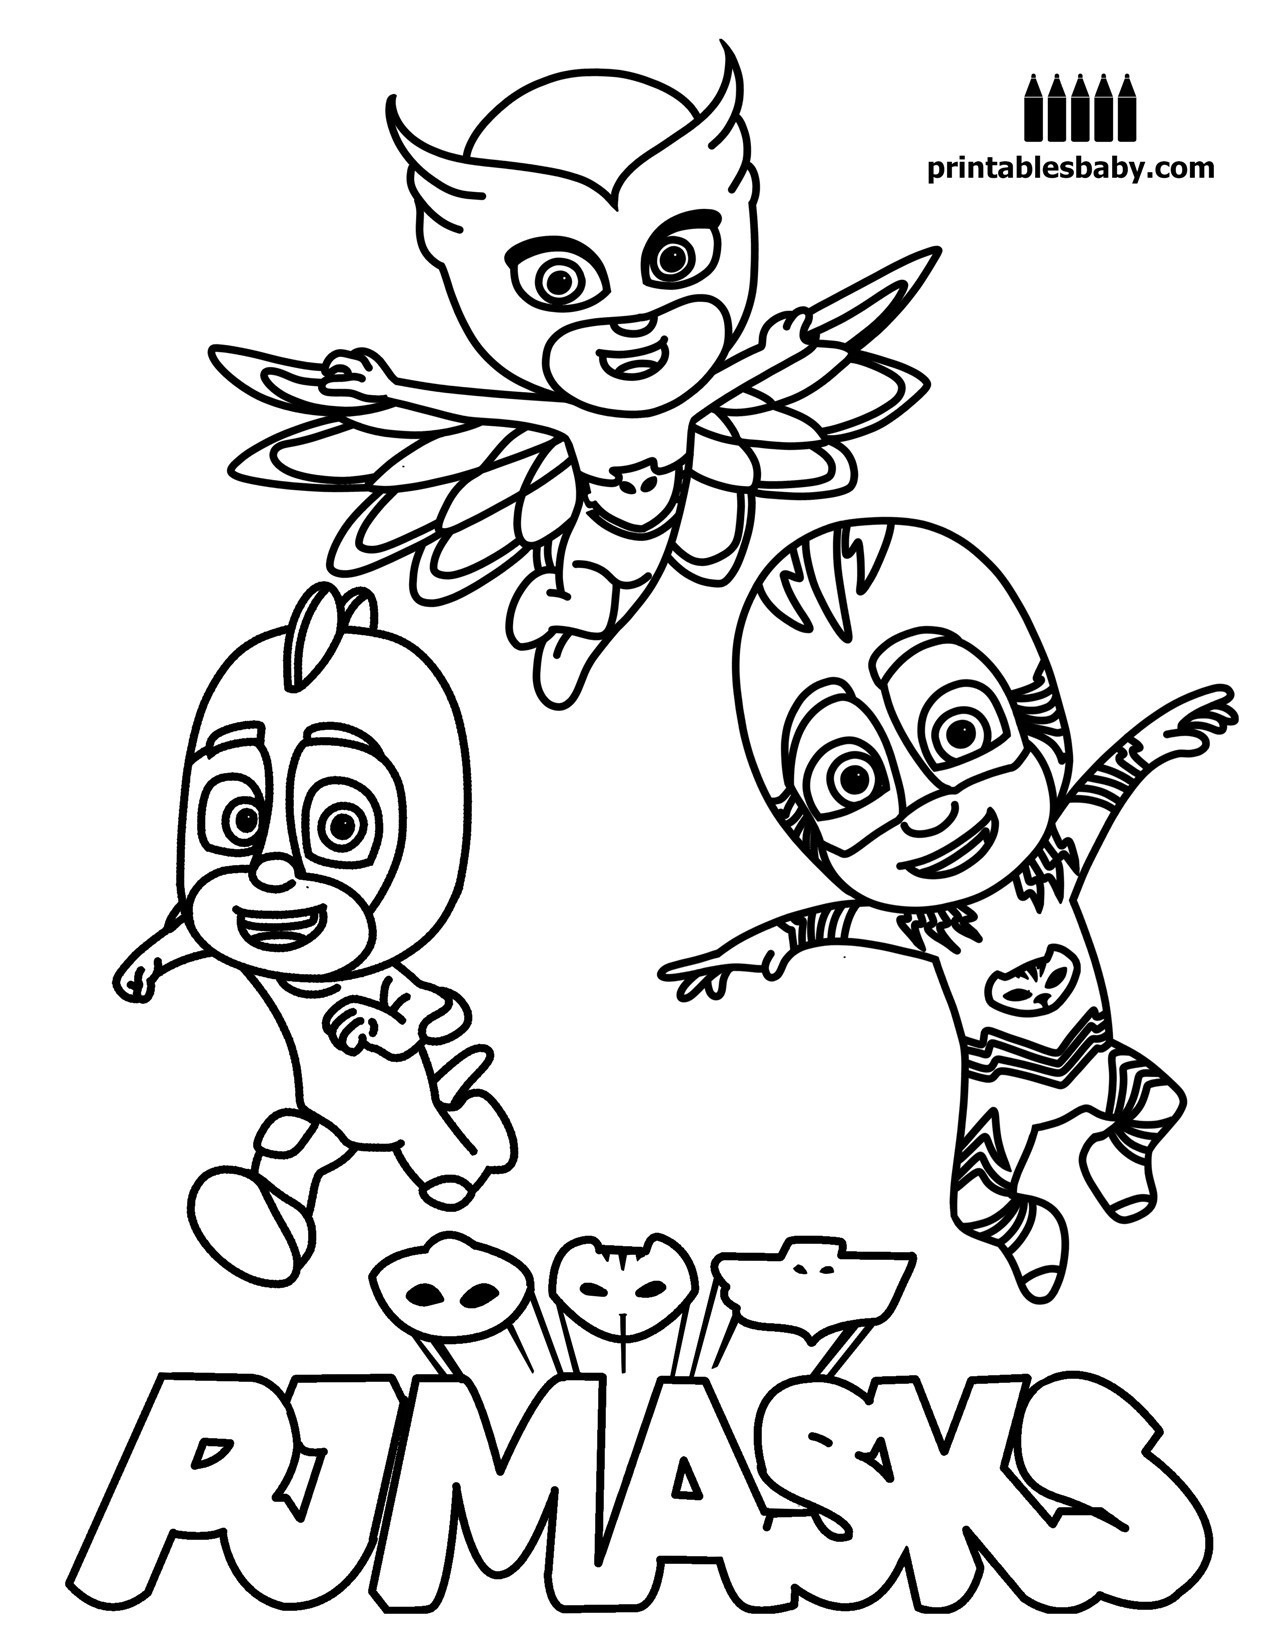 Pj Mask Owlette Coloring Pages At Getcolorings